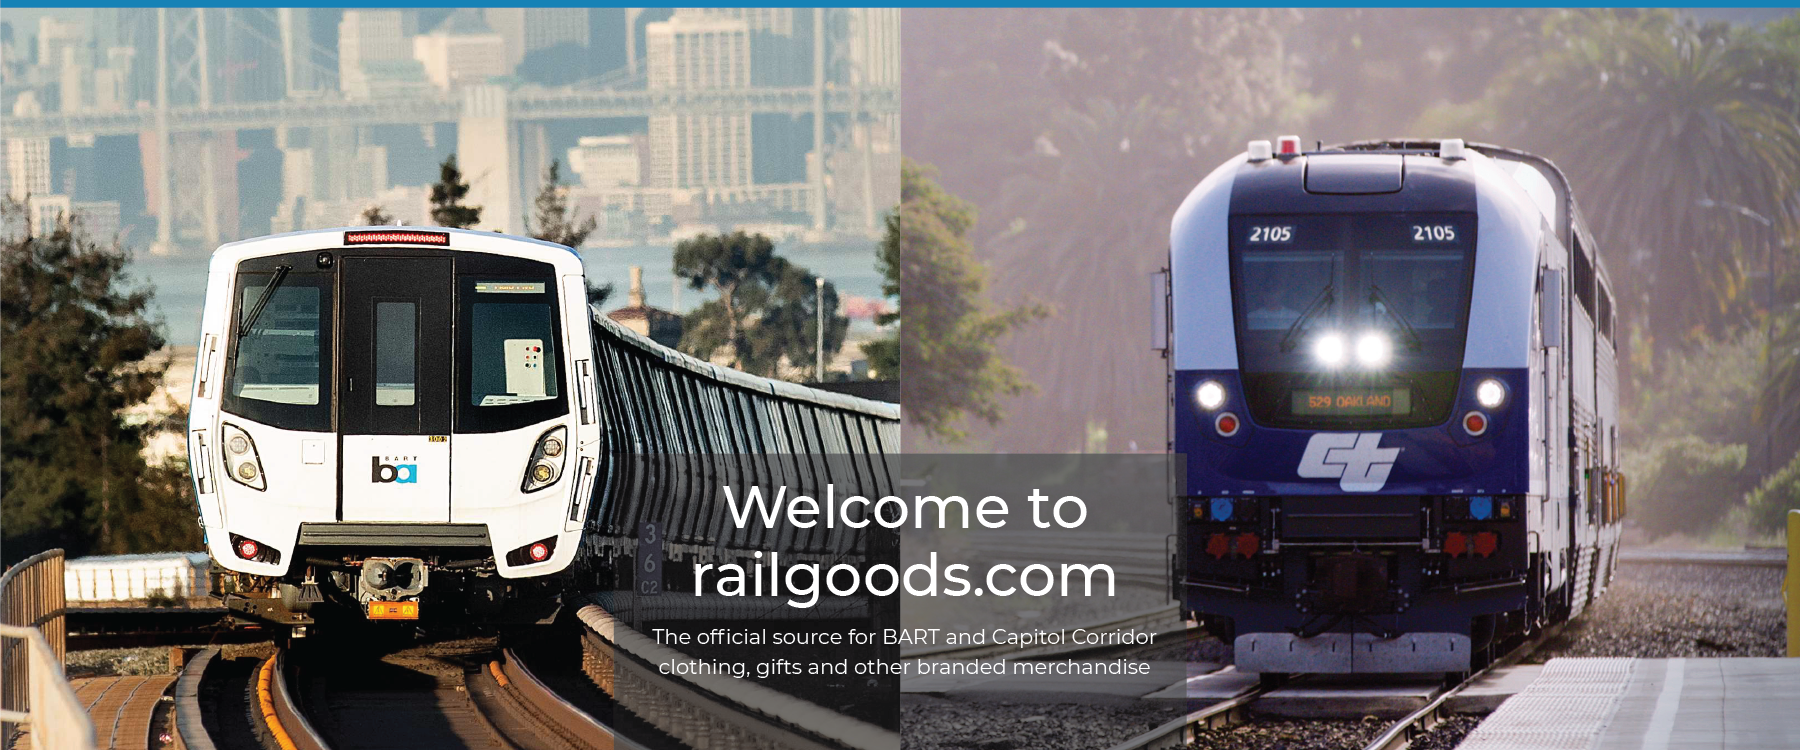 Welcome to railgoods.com